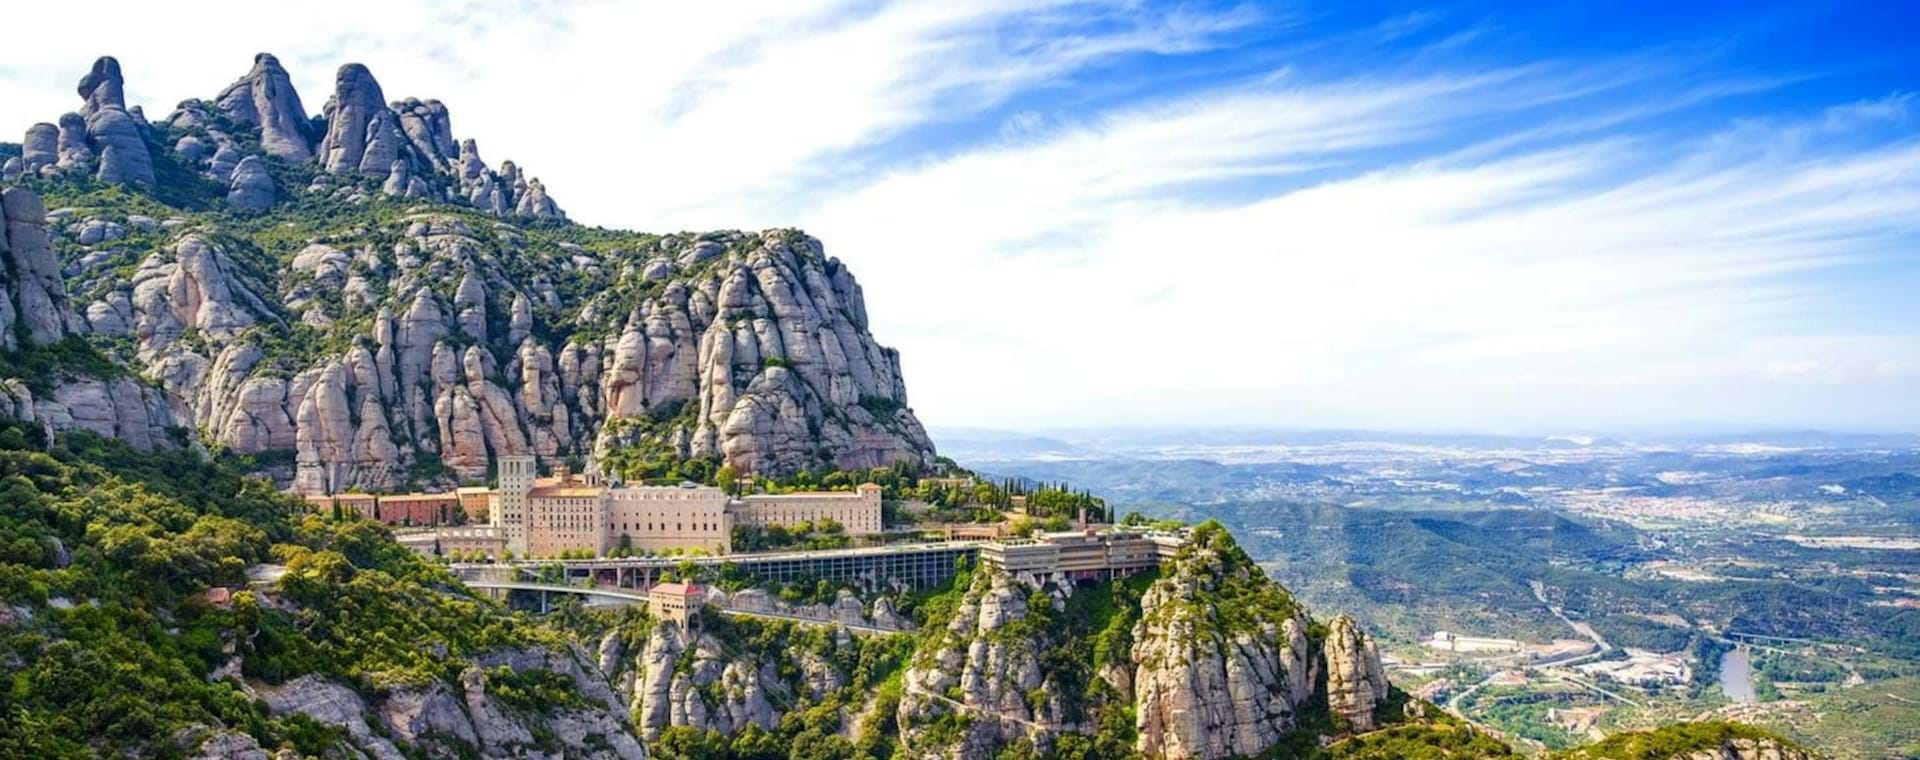 Early-Morning Express: Montserrat Tour